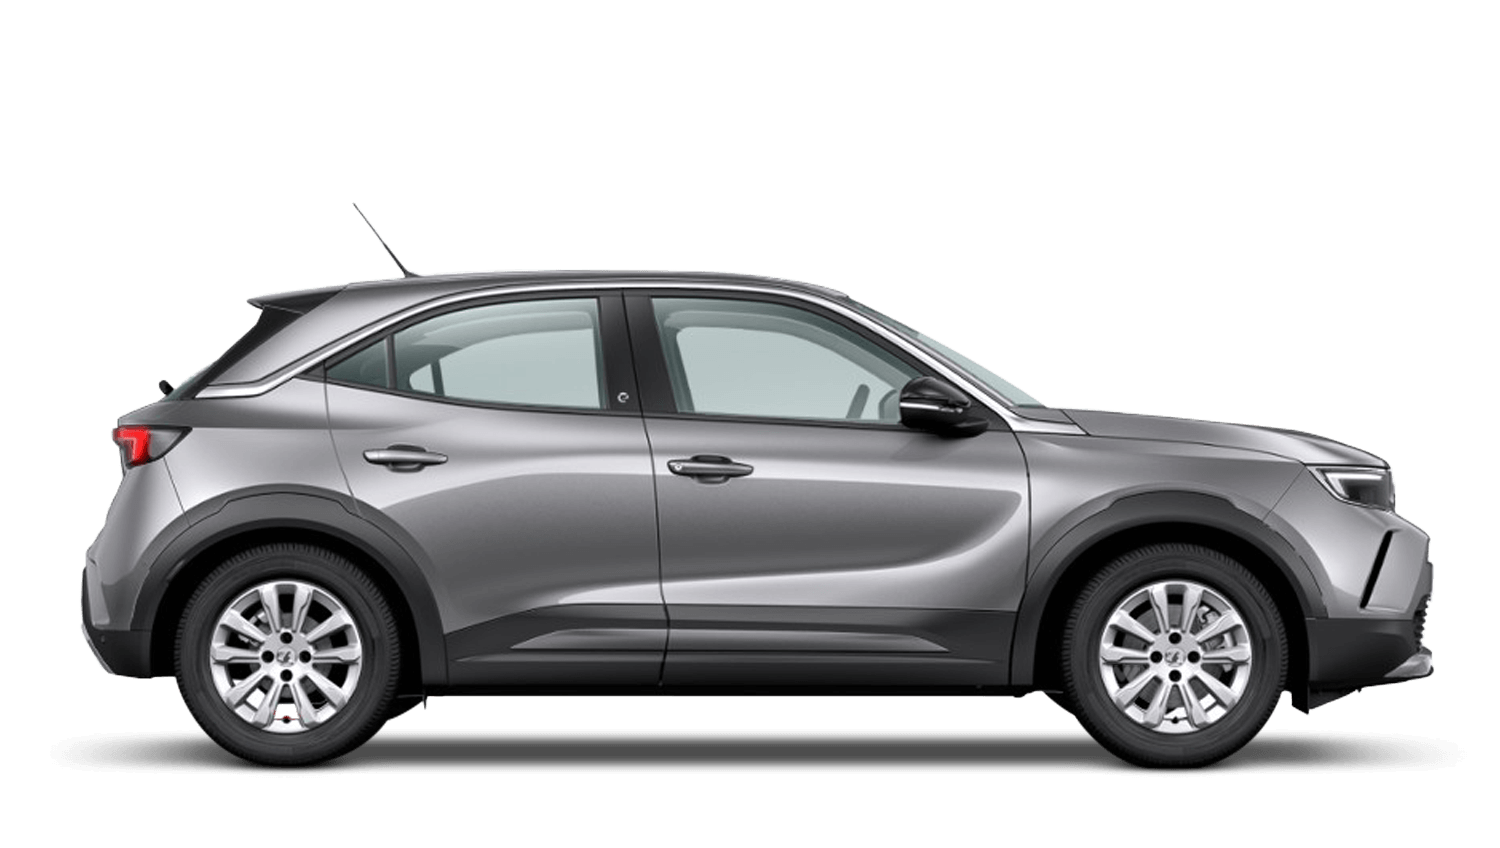 Quartz Grey (Metallic) All-New Vauxhall Mokka-e